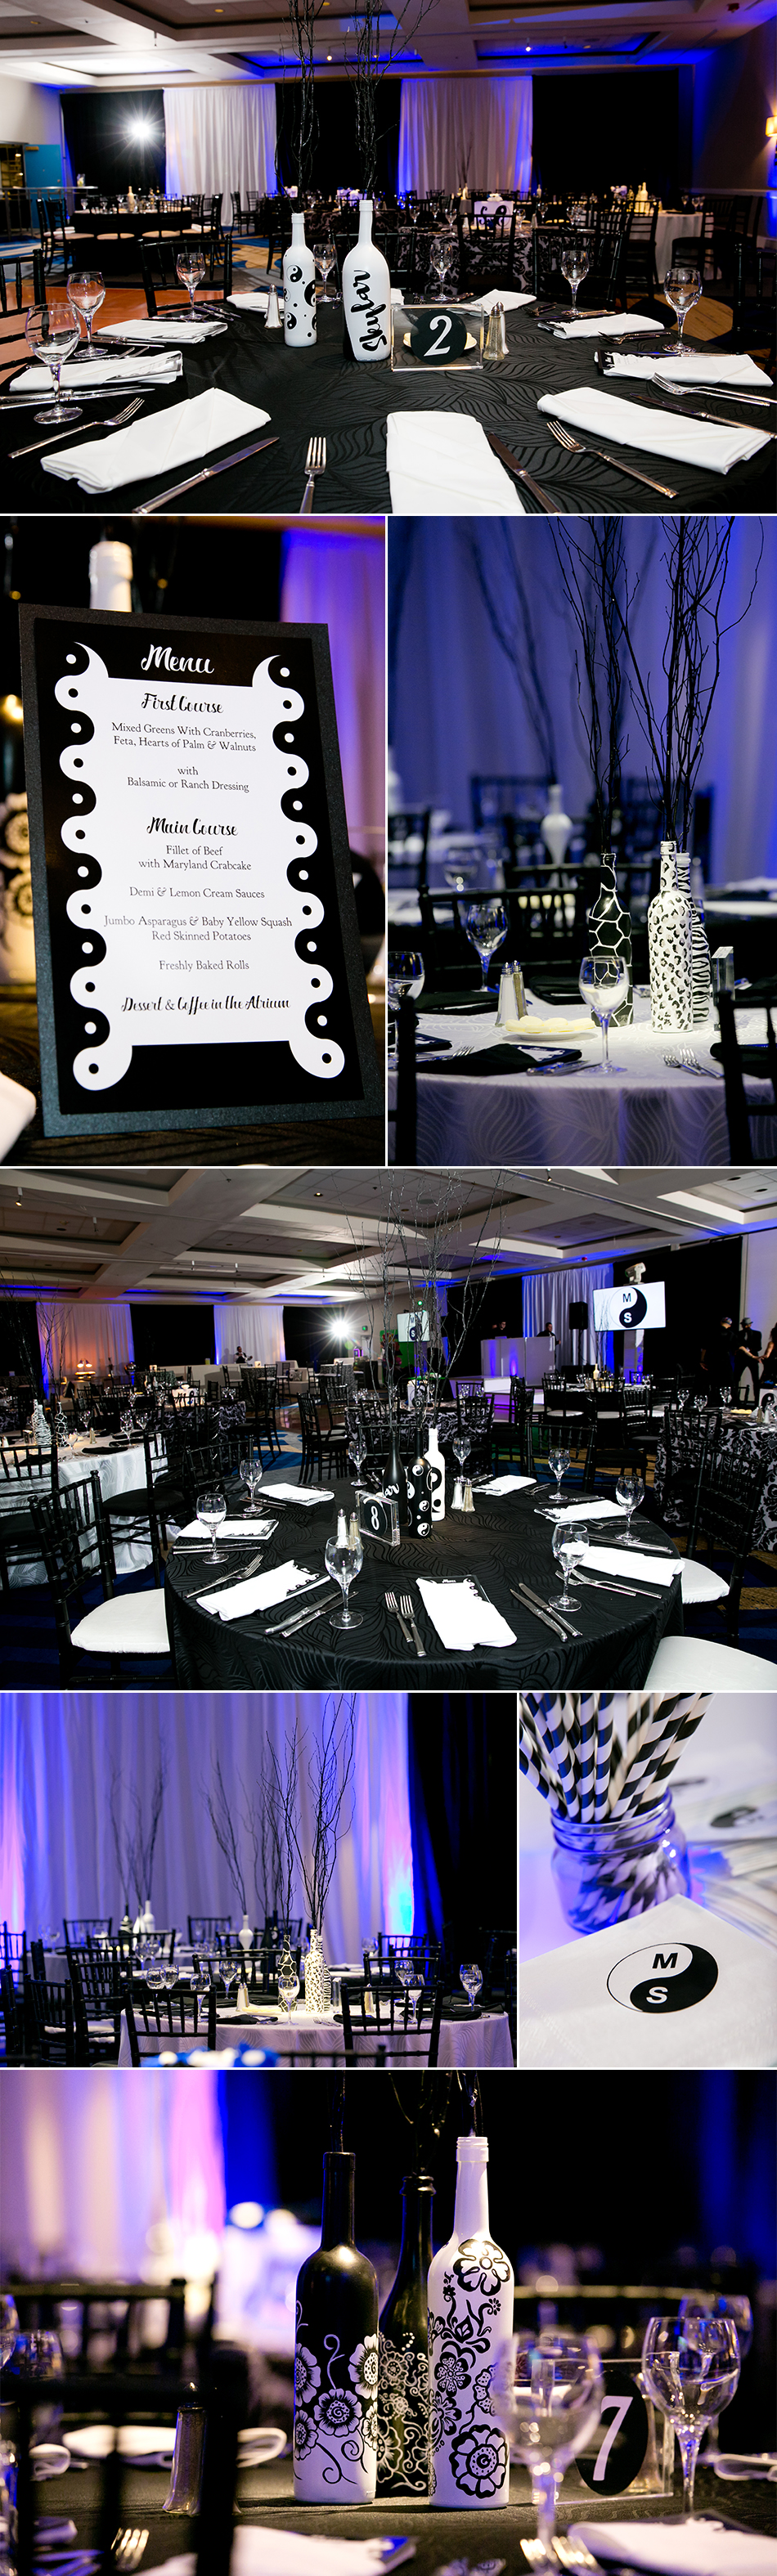 The Loews Annapolis ballroom was contemporary styled with black and white linens, furniture and decor. We accented it with royal blue touches.